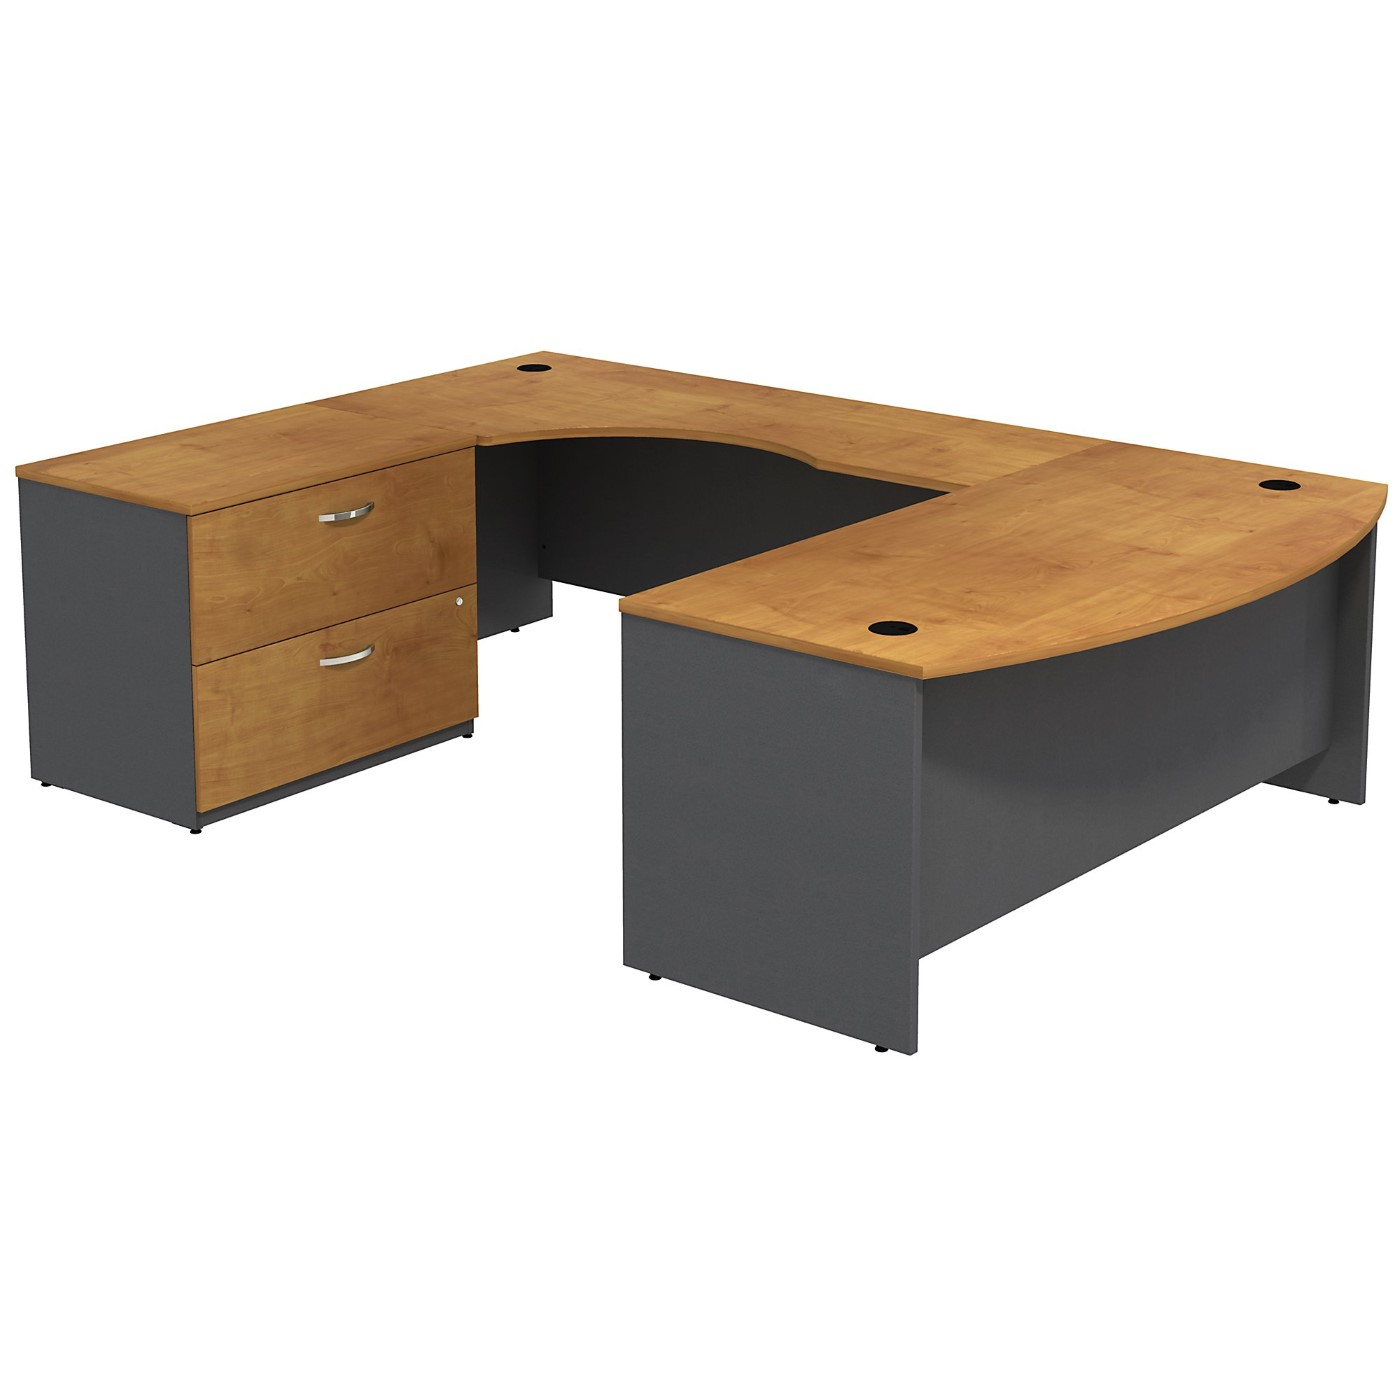 BUSH BUSINESS FURNITURE SERIES C BOW FRONT LEFT HANDED U SHAPED DESK WITH 2 DRAWER LATERAL FILE CABINET. FREE SHIPPING SALE DEDUCT 10% MORE ENTER '10percent' IN COUPON CODE BOX WHILE CHECKING OUT.